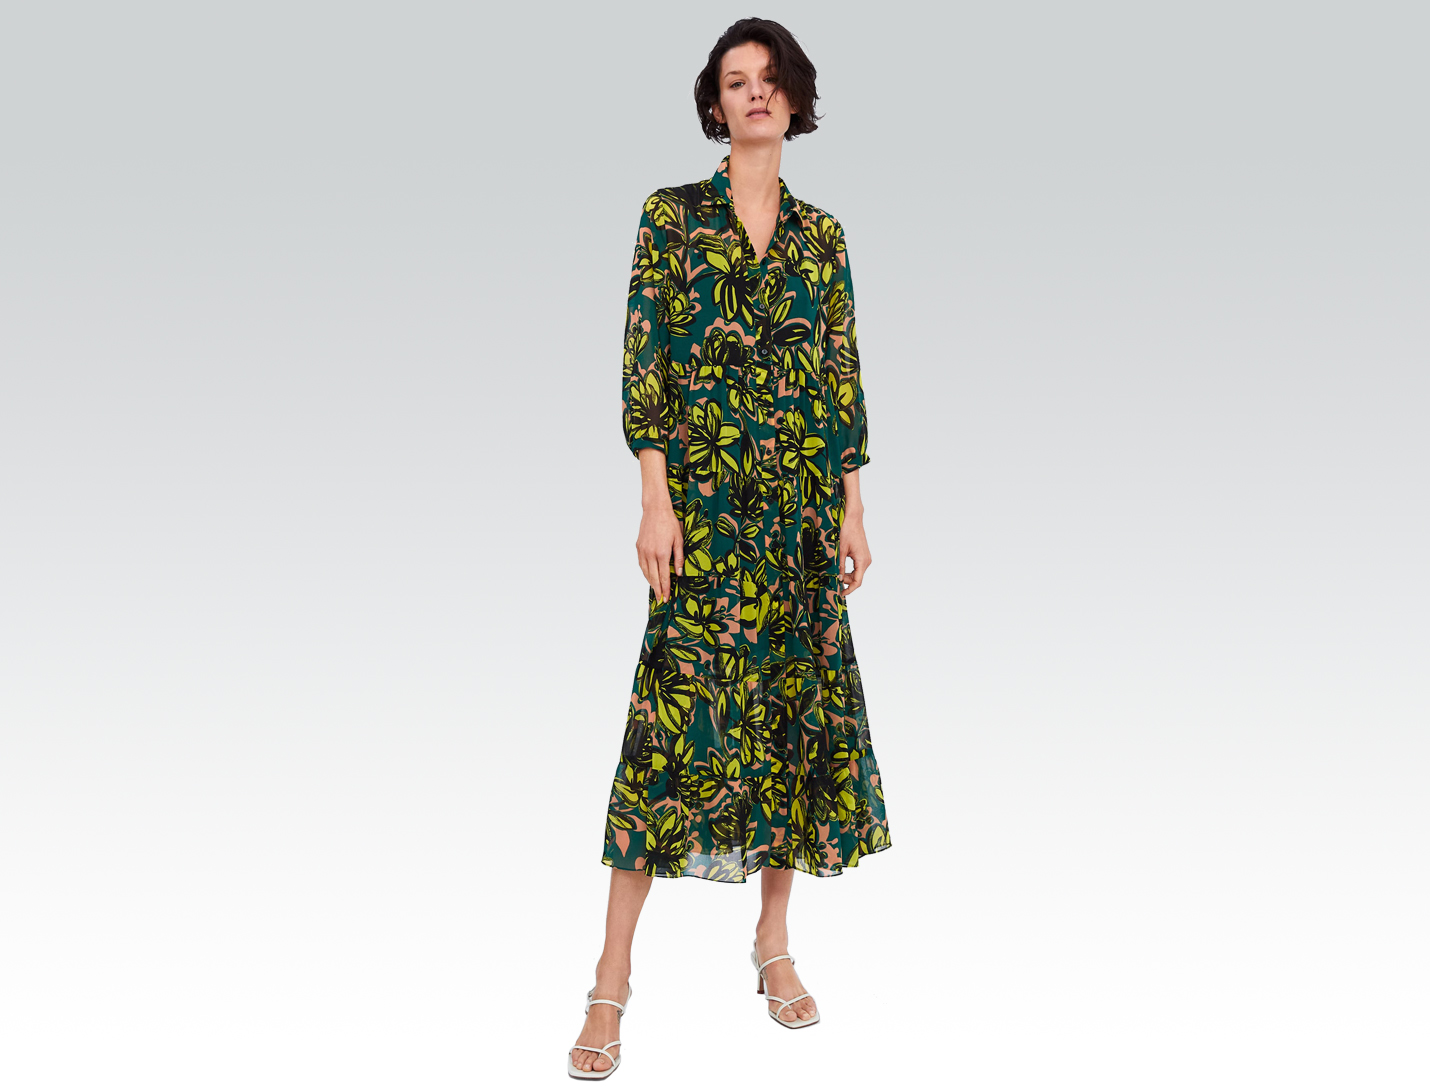 floral spring dress from zara